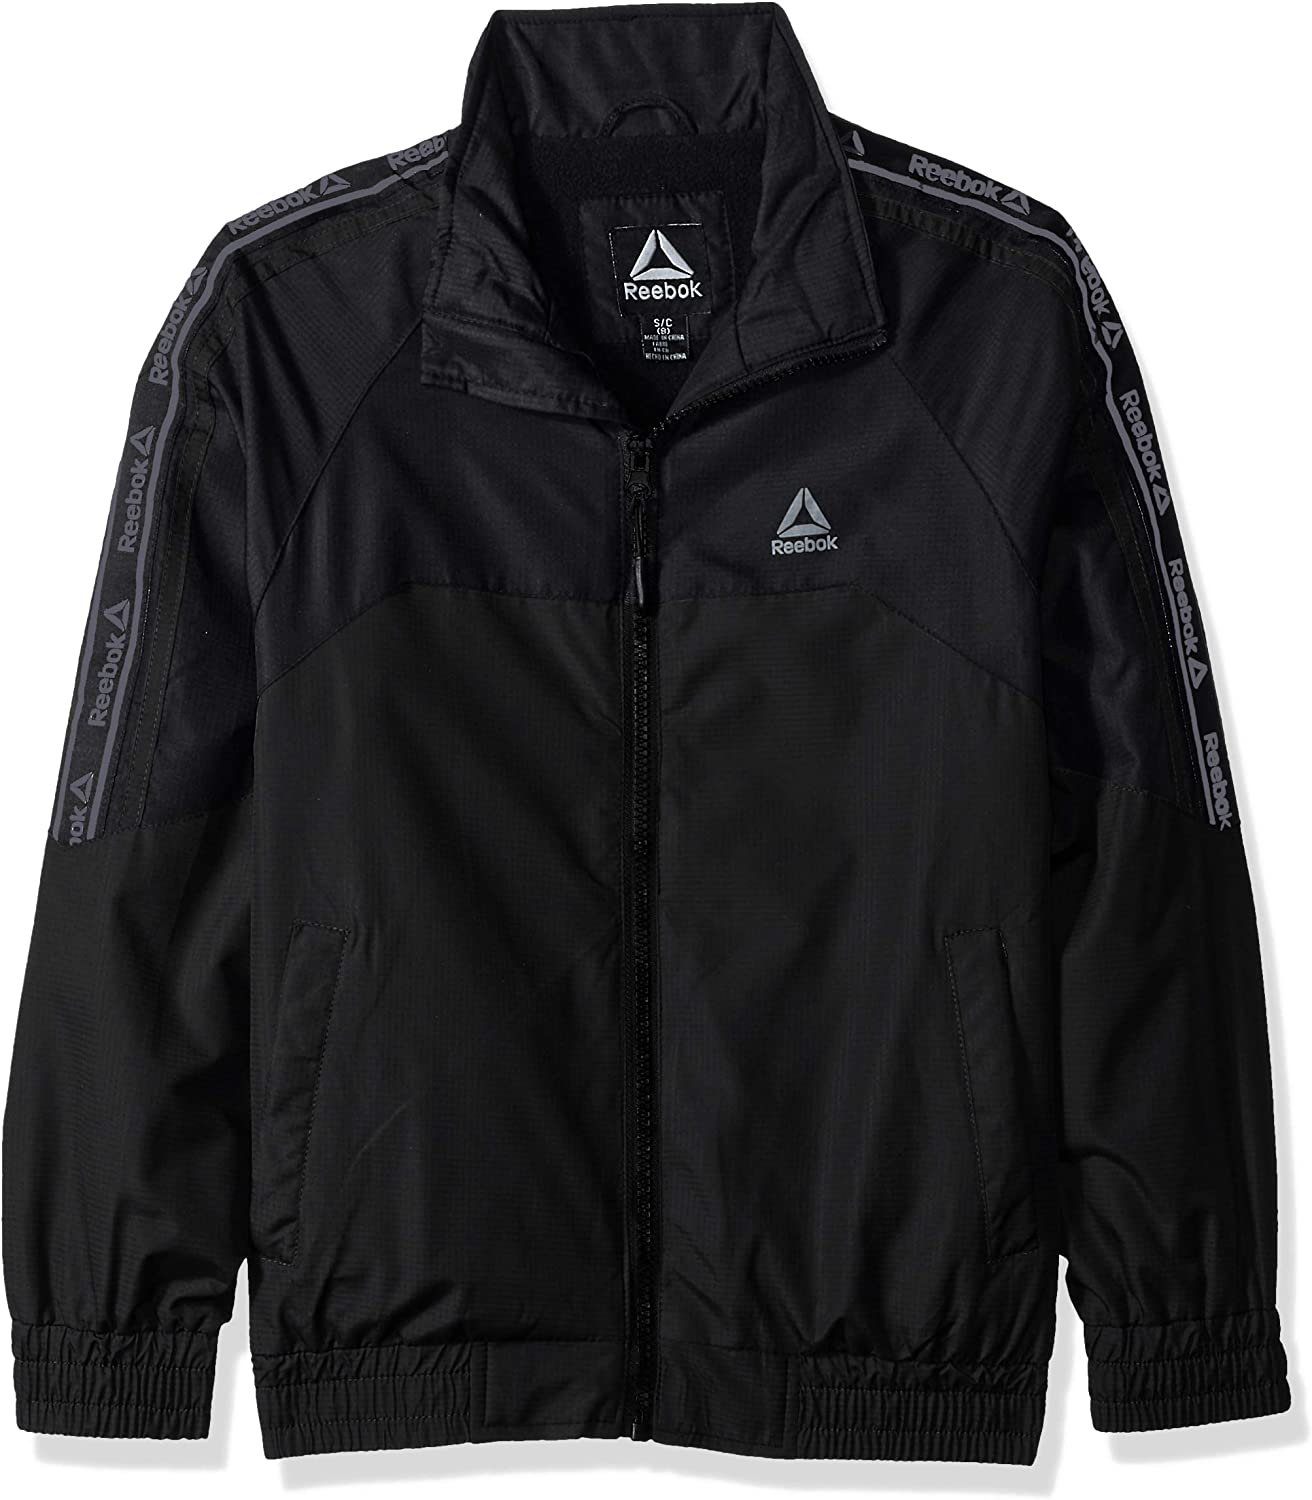 Special sale item Reebok Boys' Active Our shop most popular Midweight Jacket